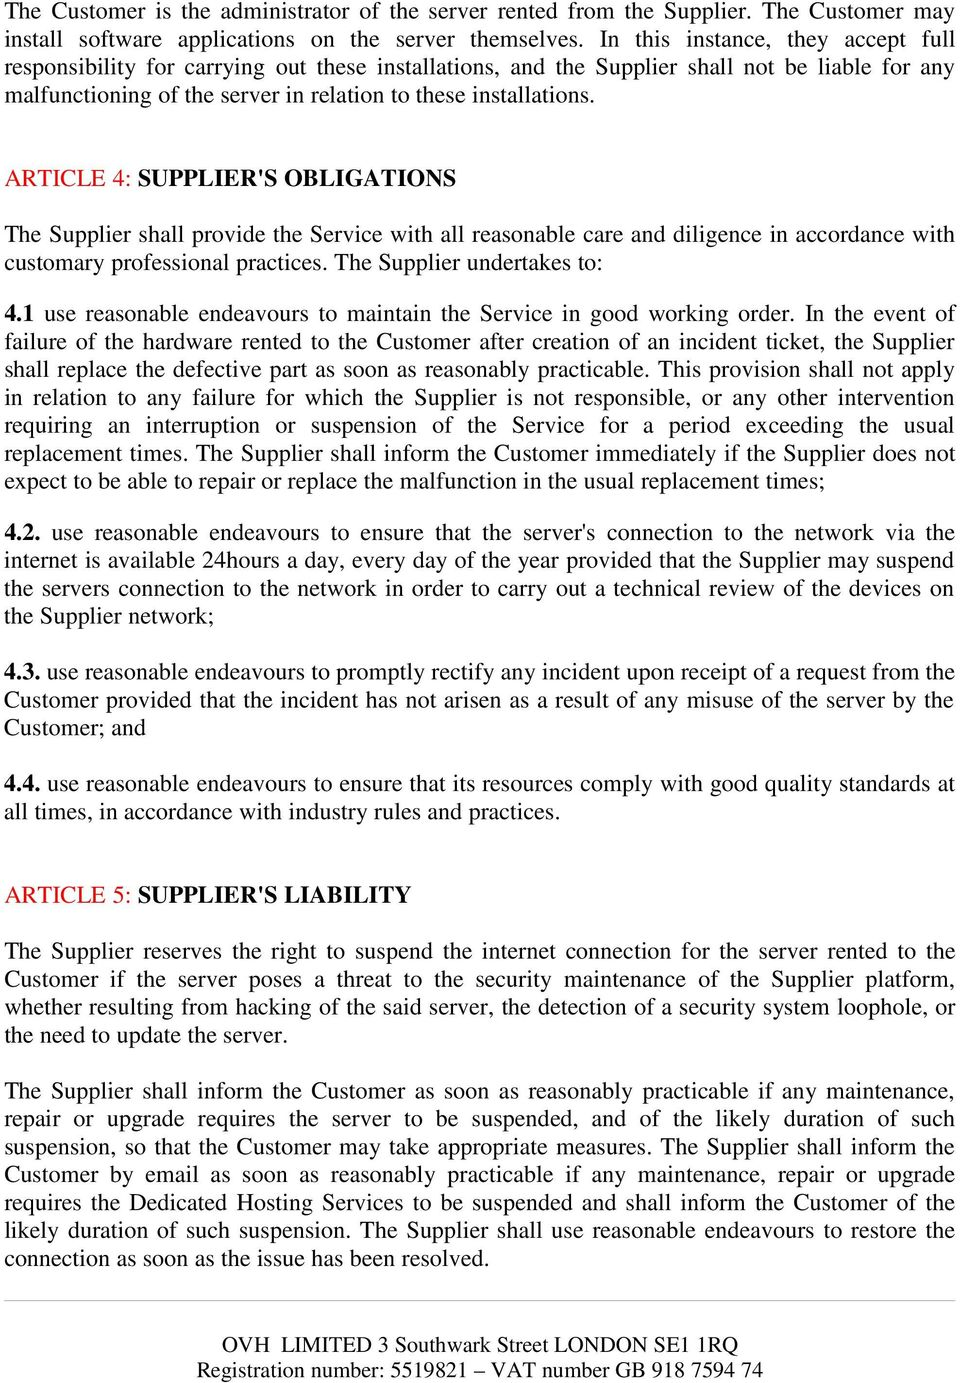 ARTICLE 4: SUPPLIER'S OBLIGATIONS The Supplier shall provide the Service with all reasonable care and diligence in accordance with customary professional practices. The Supplier undertakes to: 4.